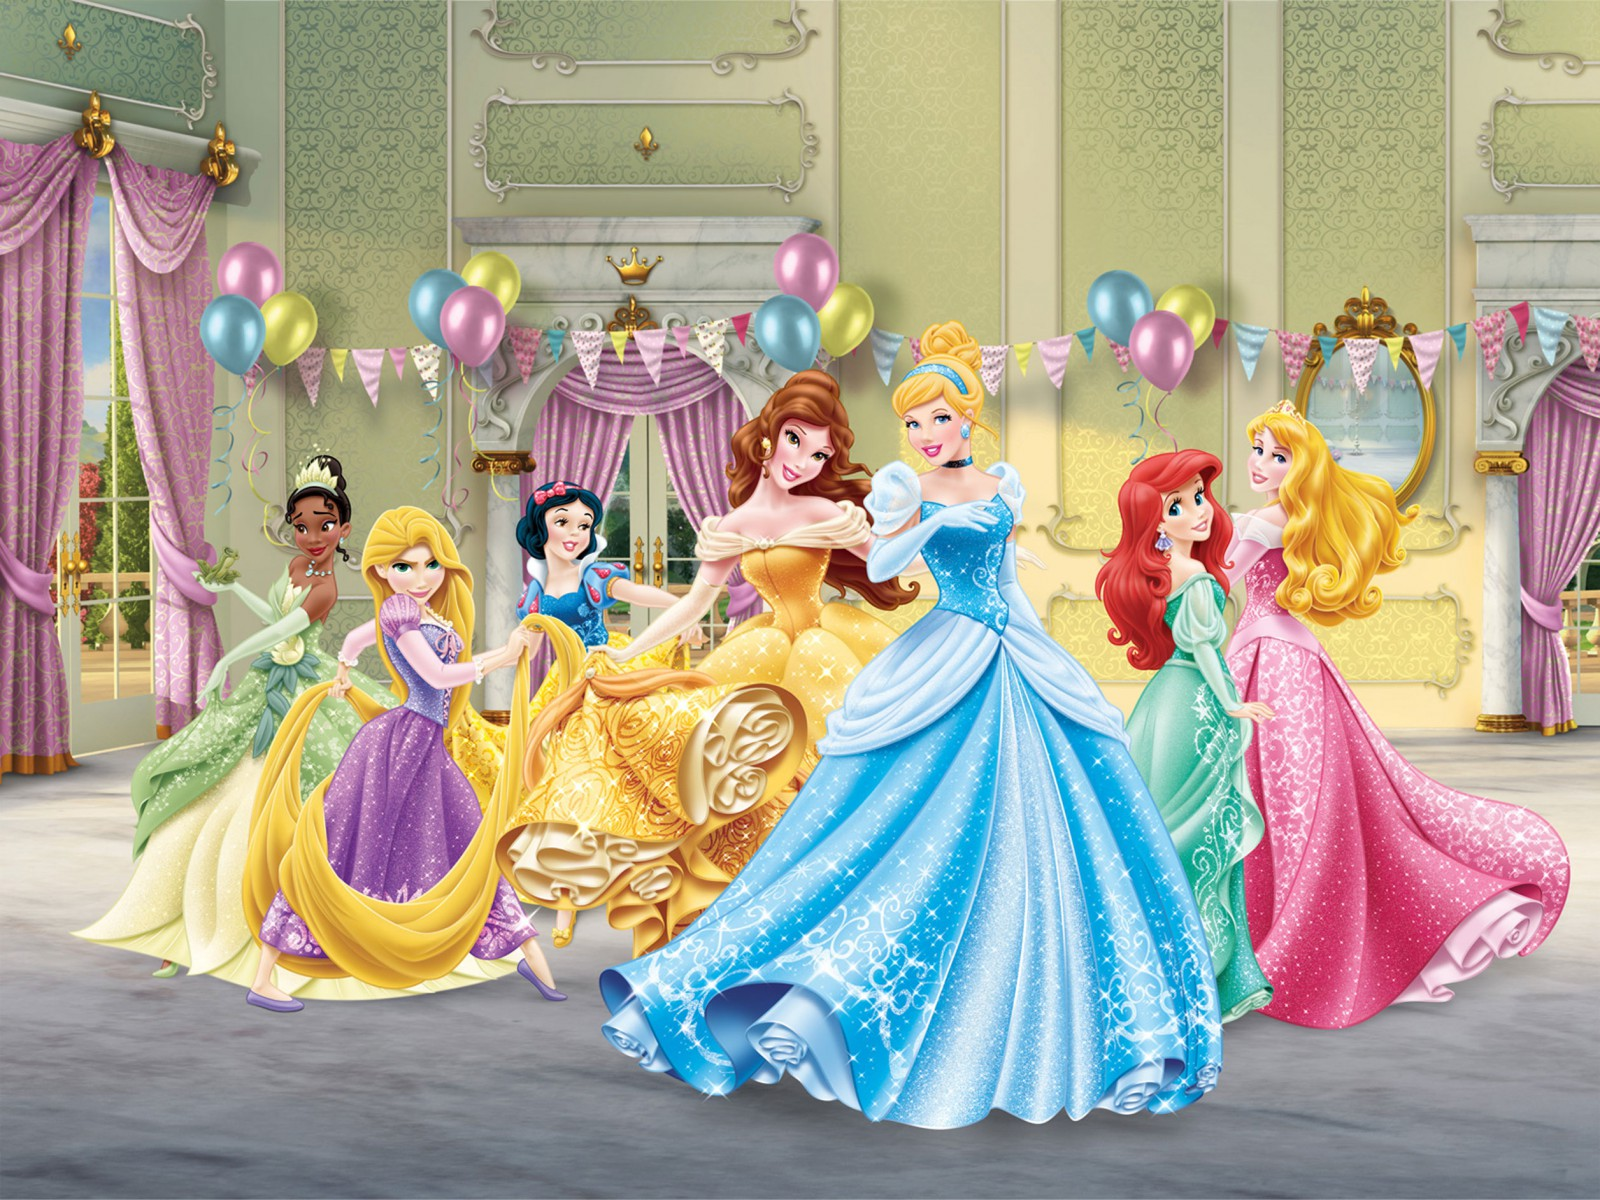 Xl photo wallpaper mural disney princess cindarella for Disney mural wallpaper